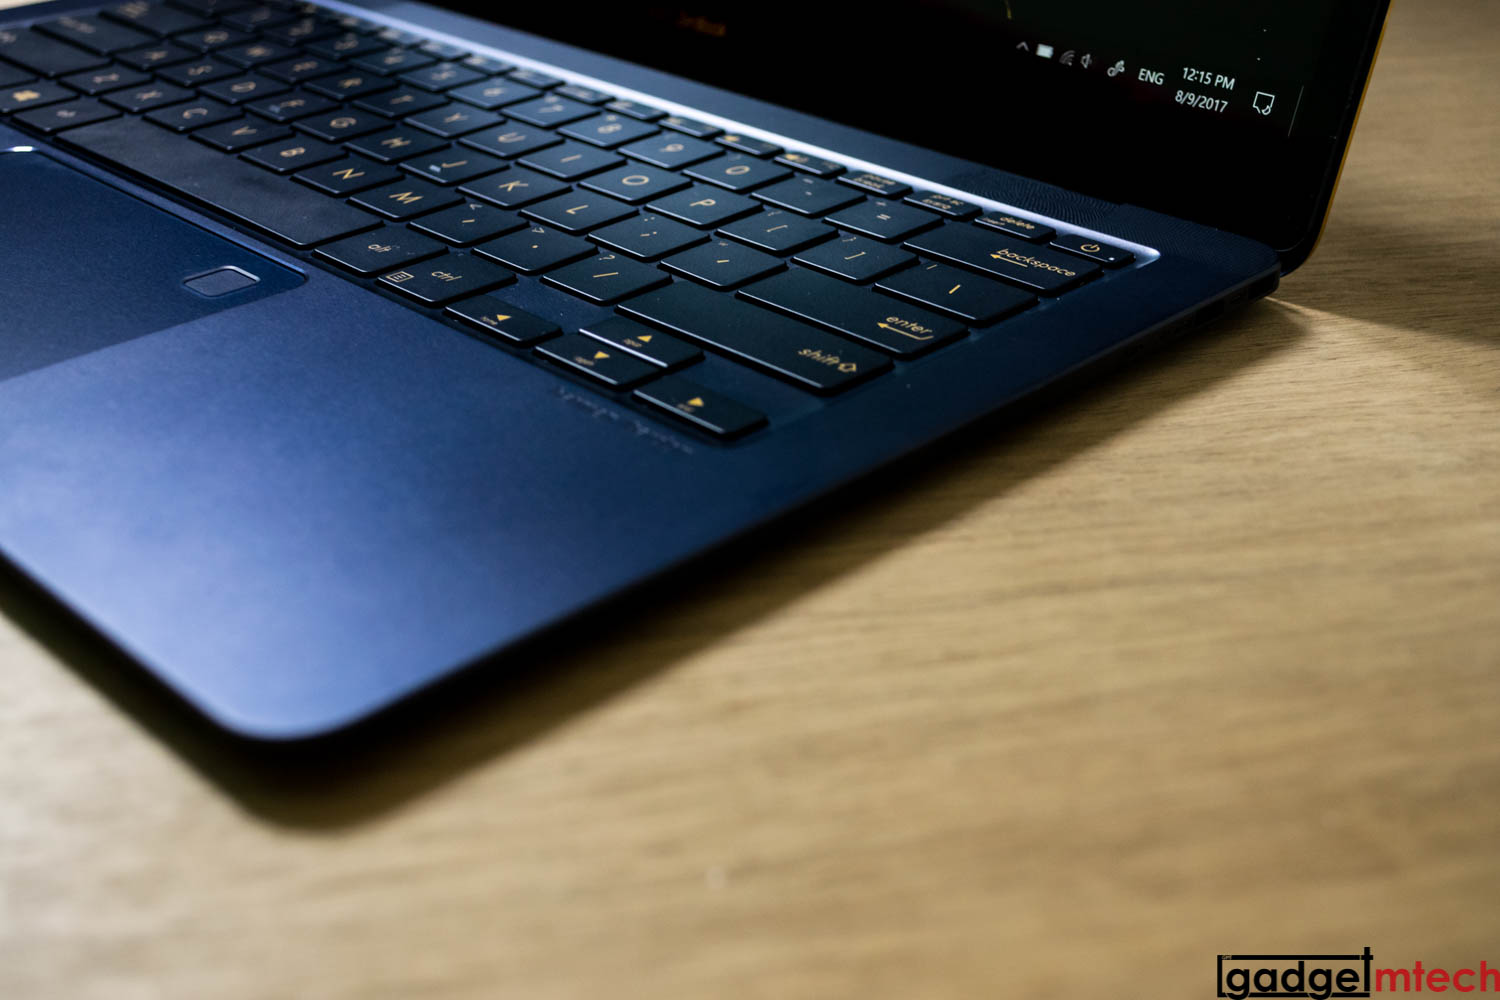 ASUS ZenBook 3 Deluxe Review: Thin Luxury — GadgetMTech